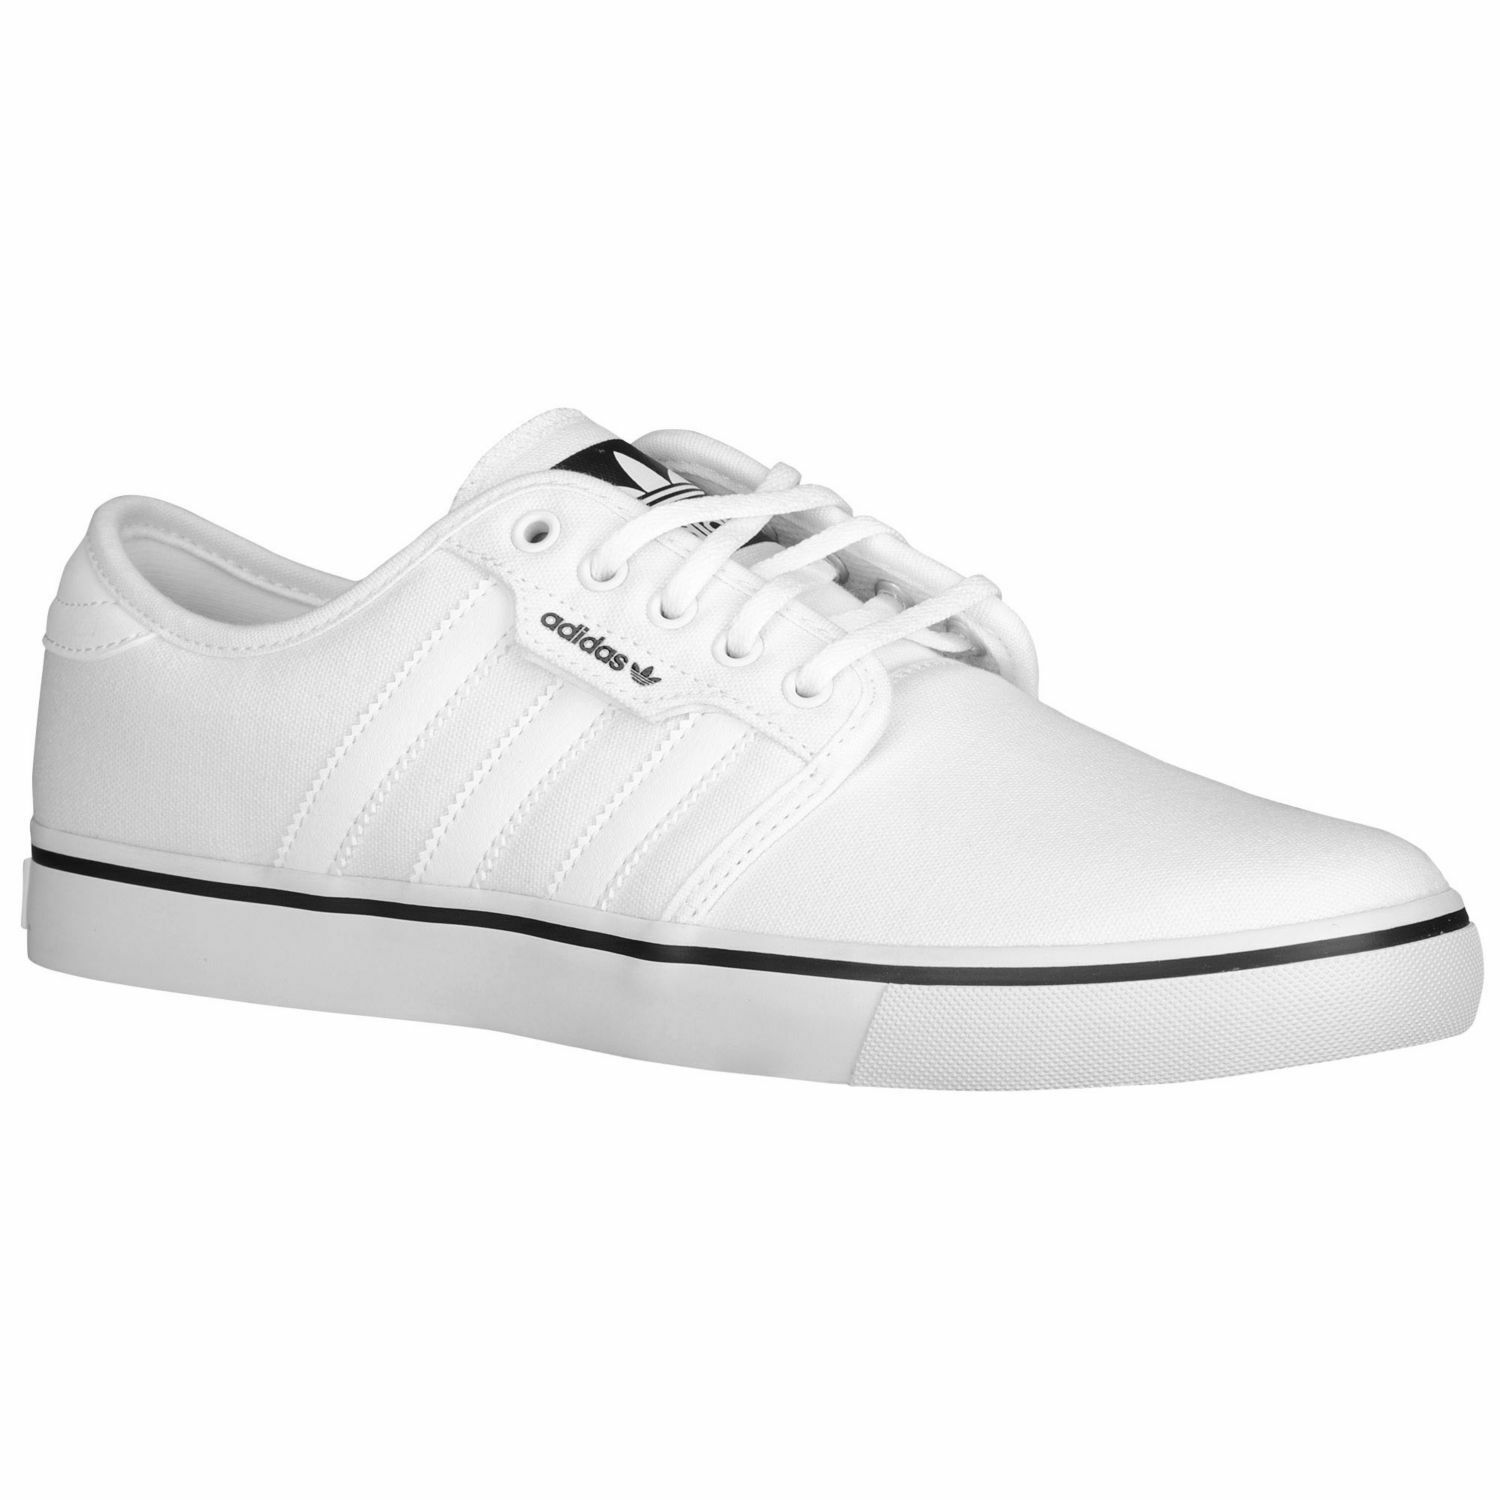 adidas canvas shoes mens